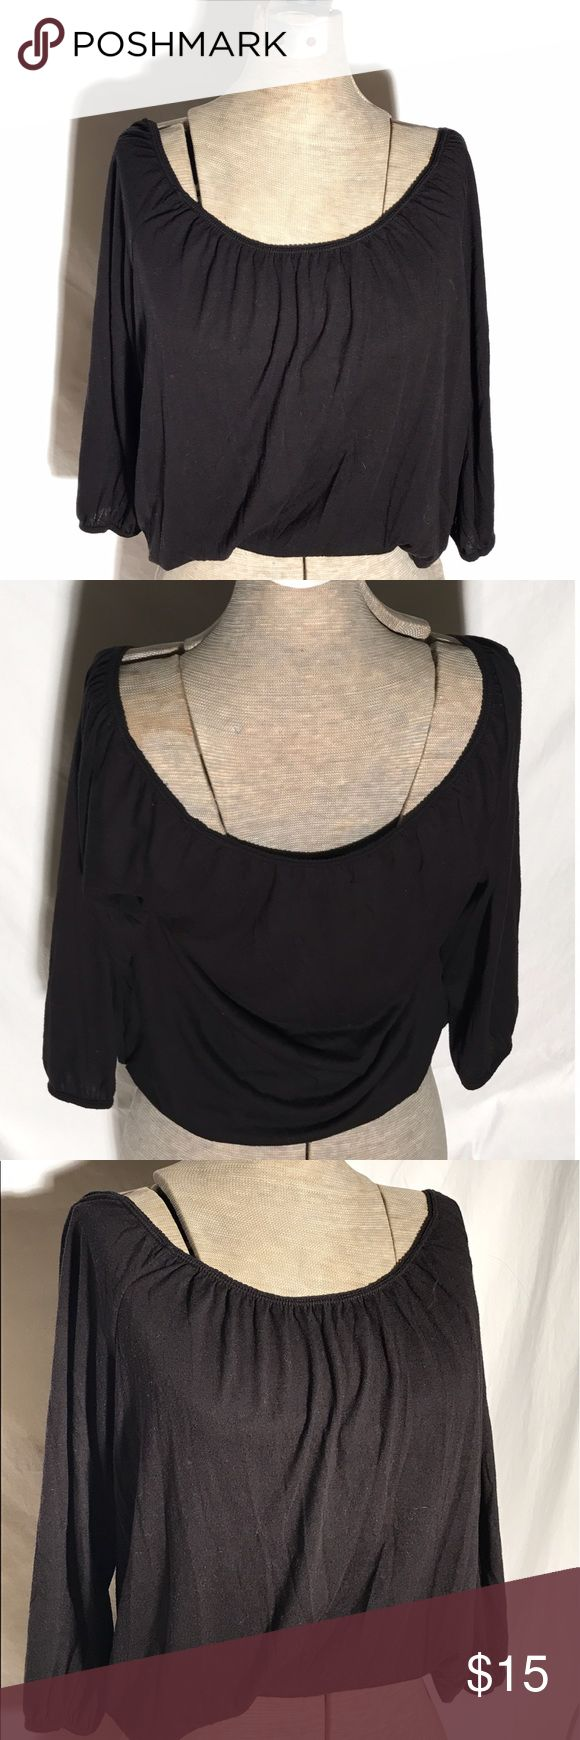 American eagle shirt Has elastic by neck and end of sleeves for a slouchy look. Super soft. Only worn a few times. In great shape! American Eagle Outfitters Tops